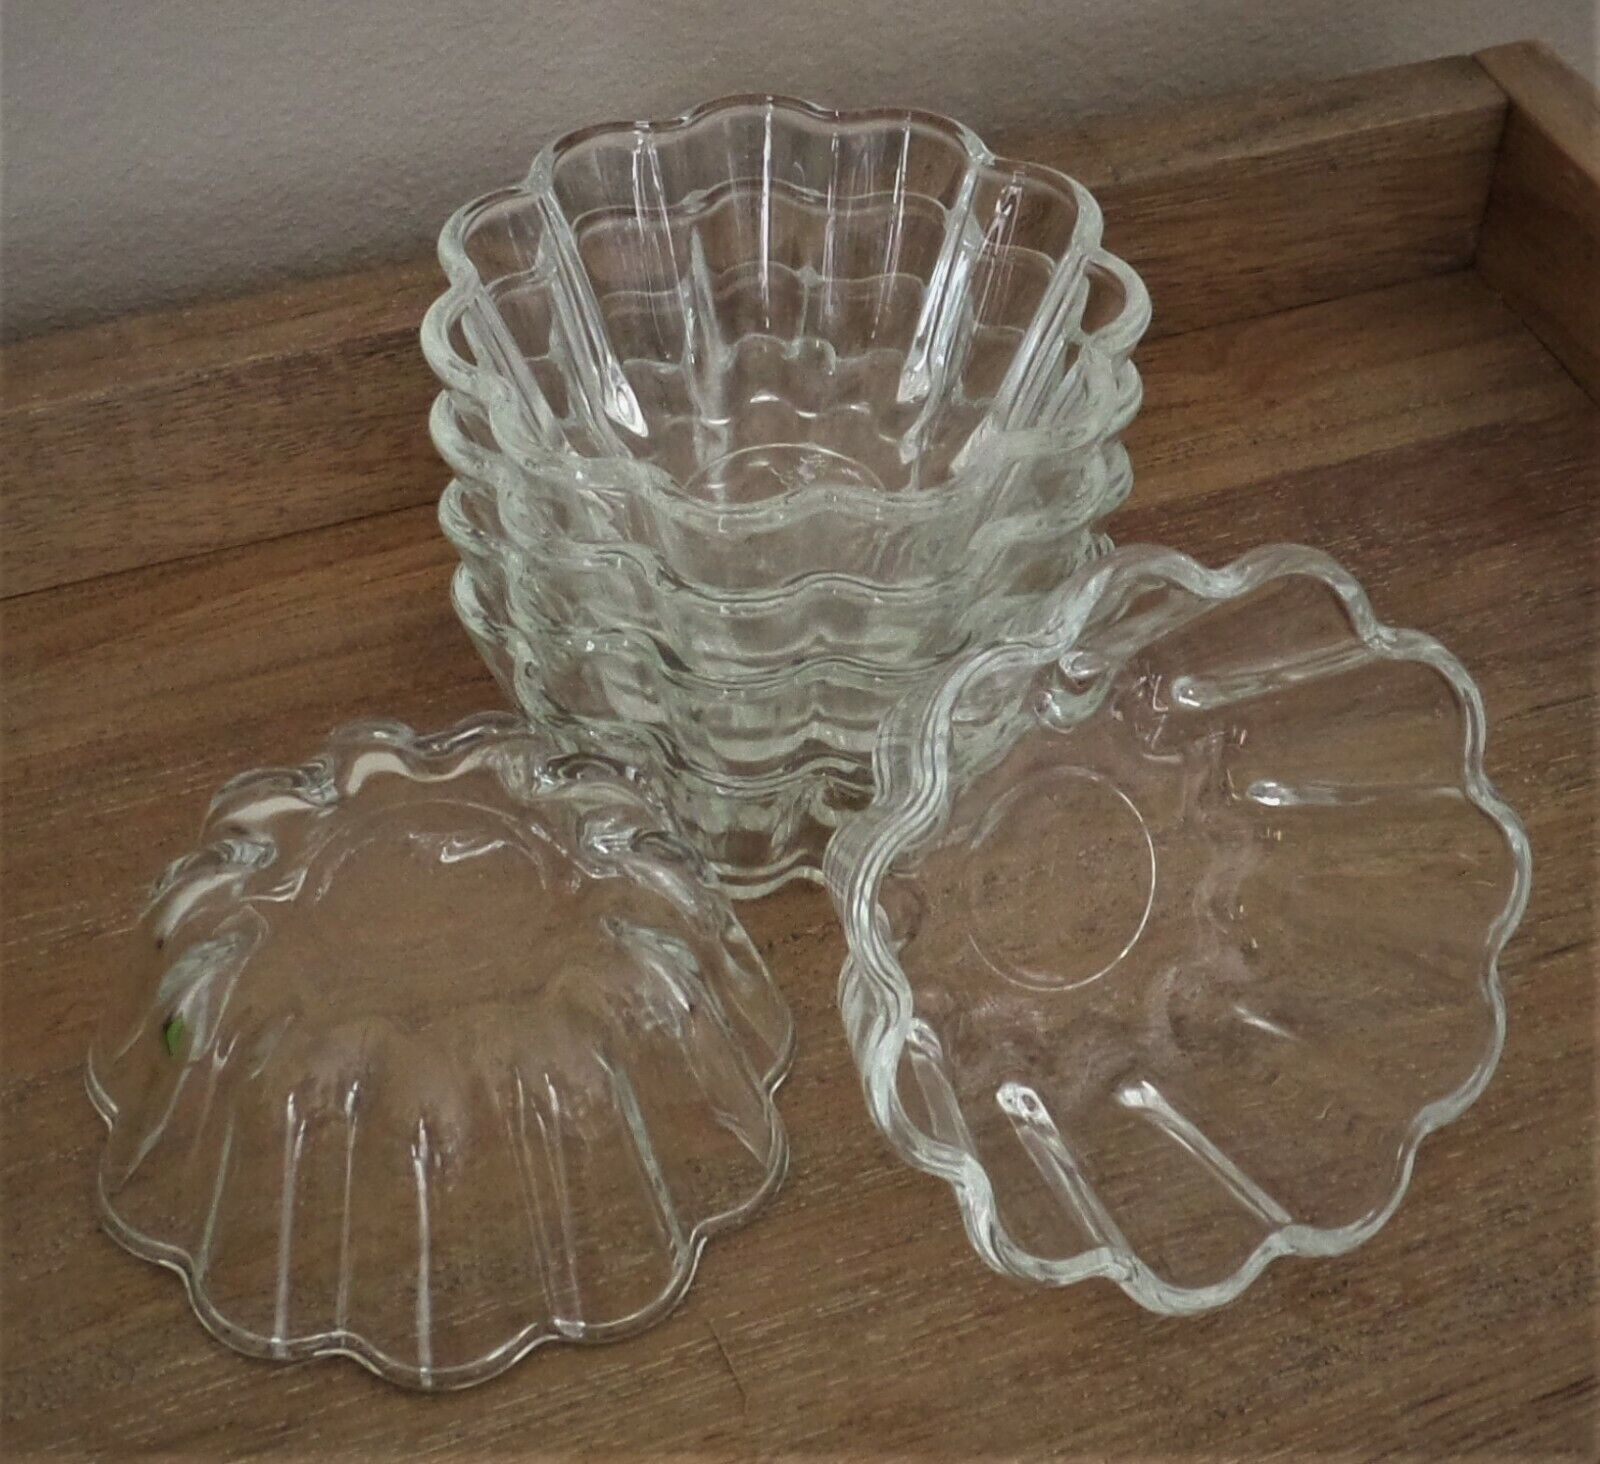 Lot of 6 Scalloped Glass Jello/Baking Molds/Dishes - Borcam Mini by Pasabahce